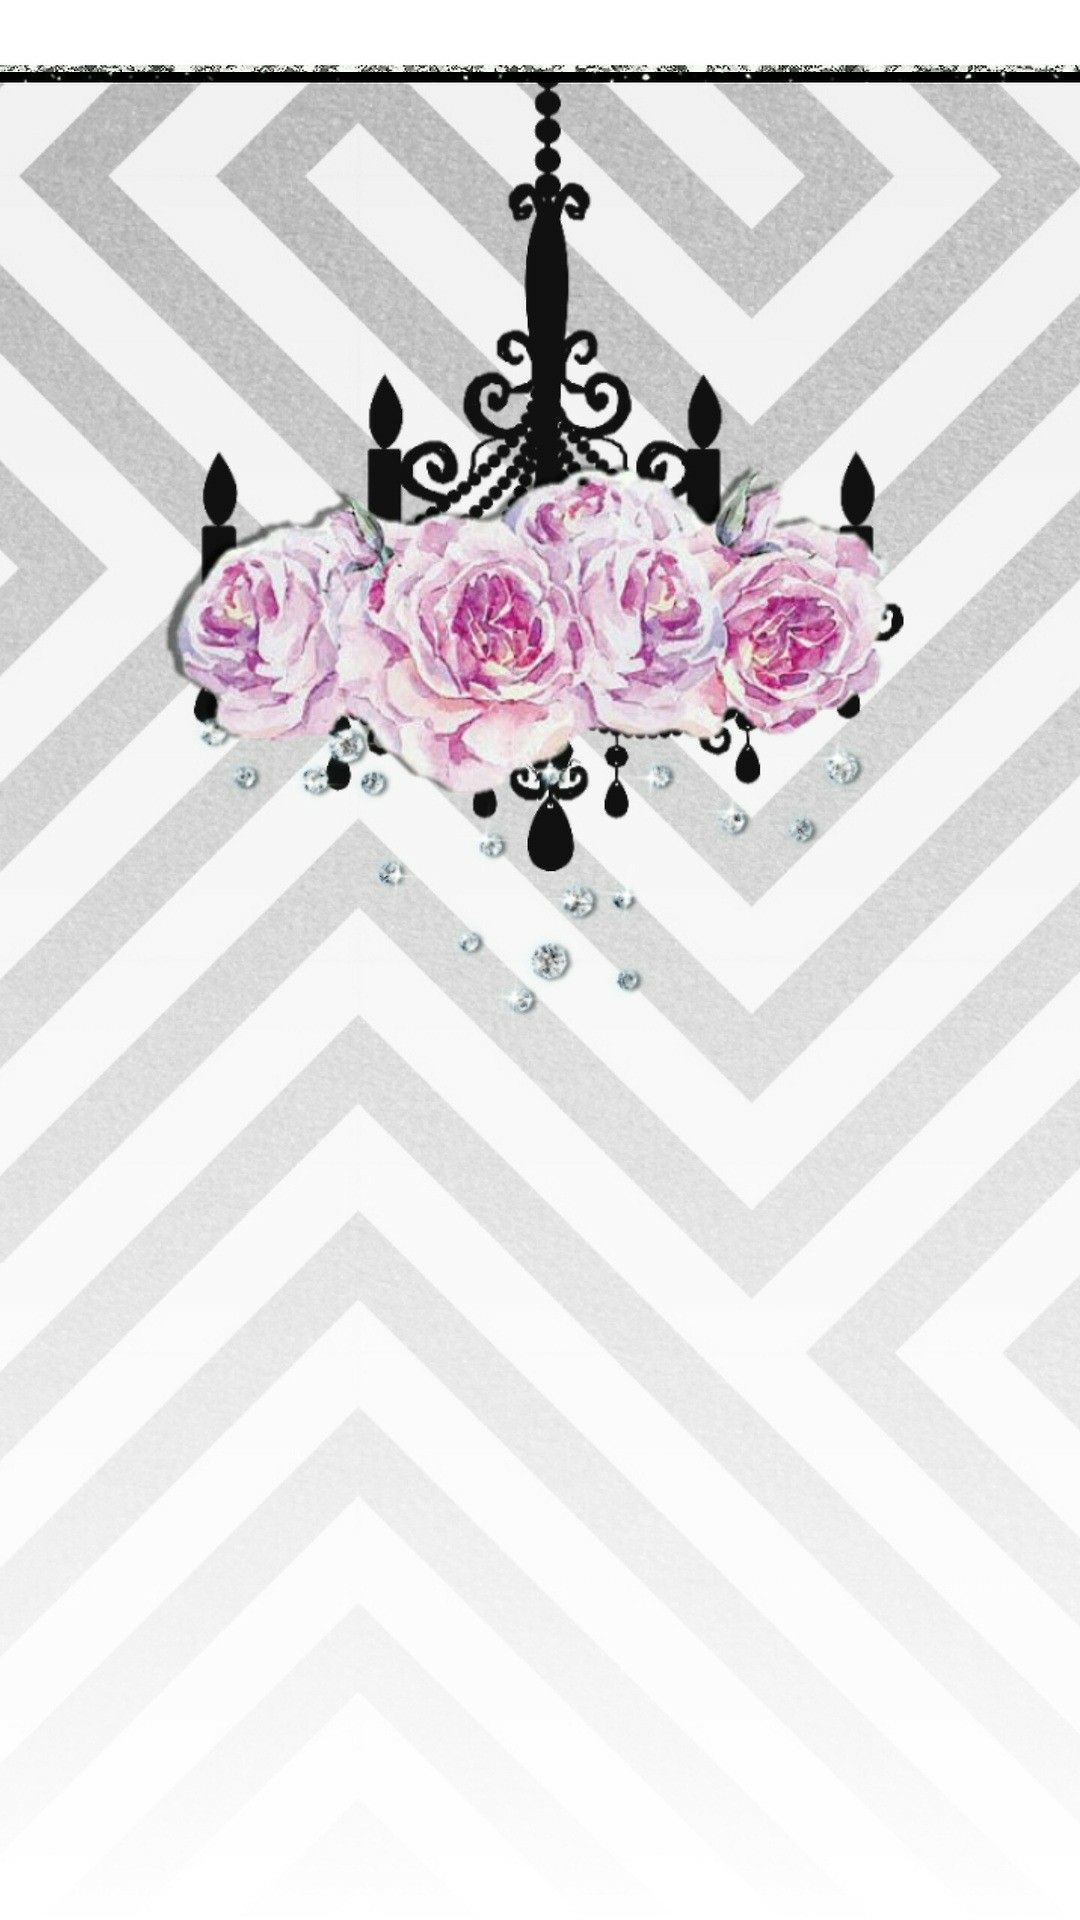 Chevron Wallpaper Glitter Ipod Backgrounds Quote Iphone Cute Wallpapers Floral